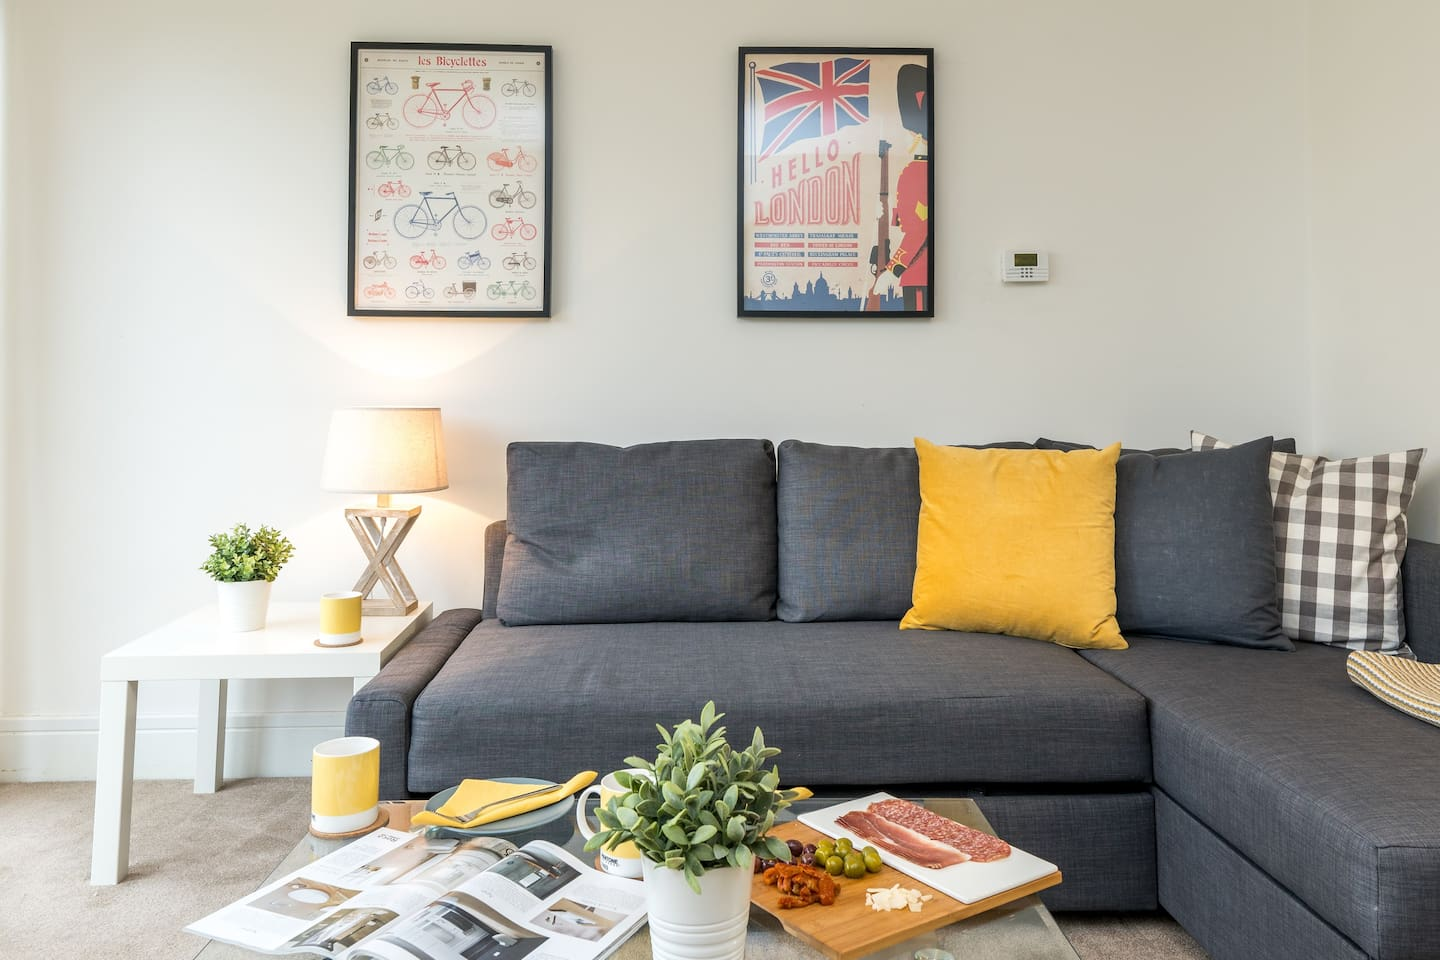 Immaculate 3-bed New Build walking distance to train station.